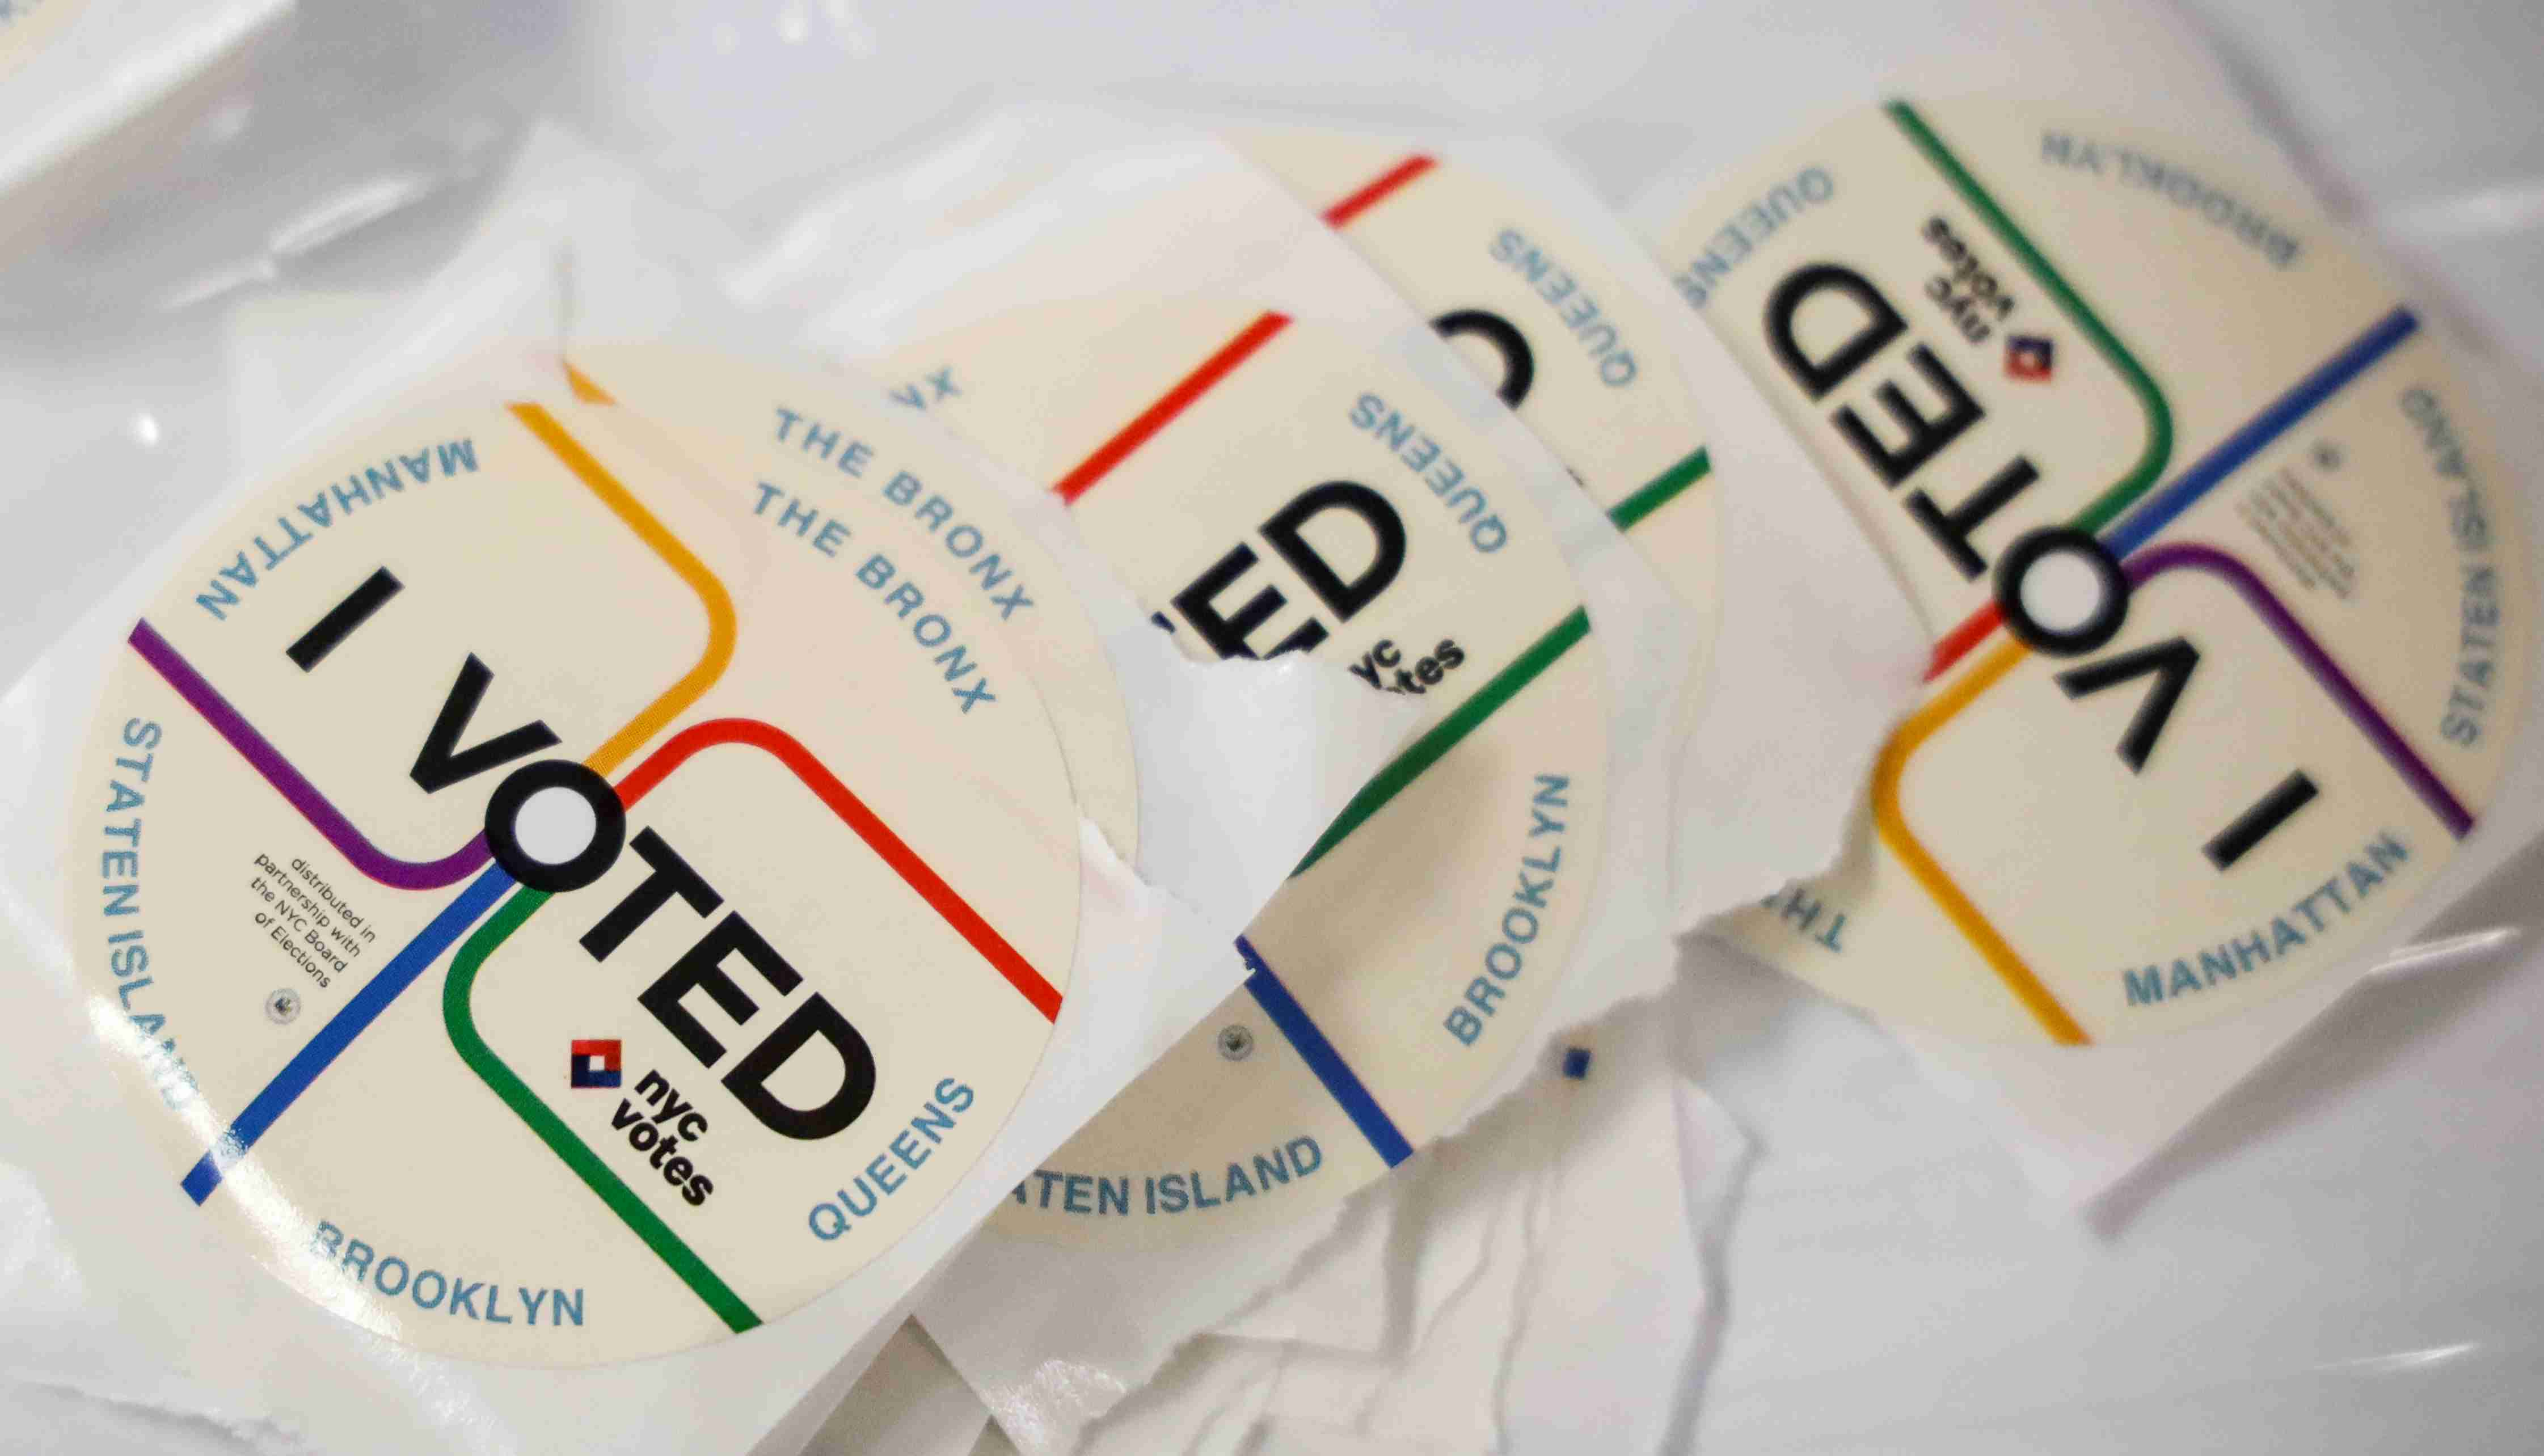 """""""I Voted"""" stickers are seen at a polling site during the New York State Democratic primary in New York City, U.S., September 13, 2018. REUTERS/Brendan McDermid - RC1122CFBDD0"""